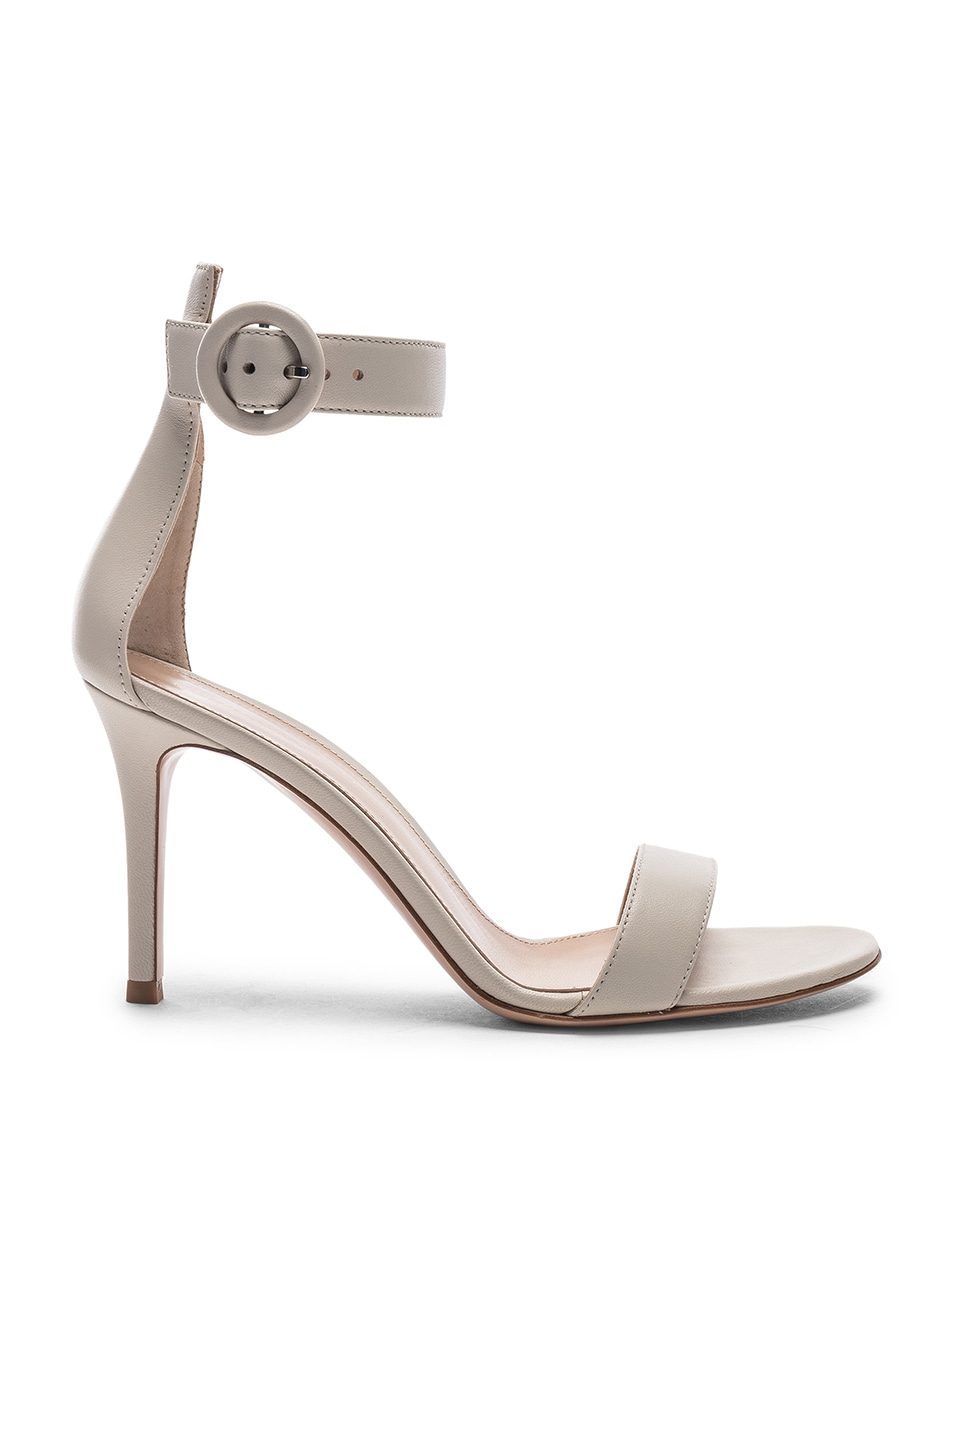 Image 1 of Gianvito Rossi Portofino Heels in Off White